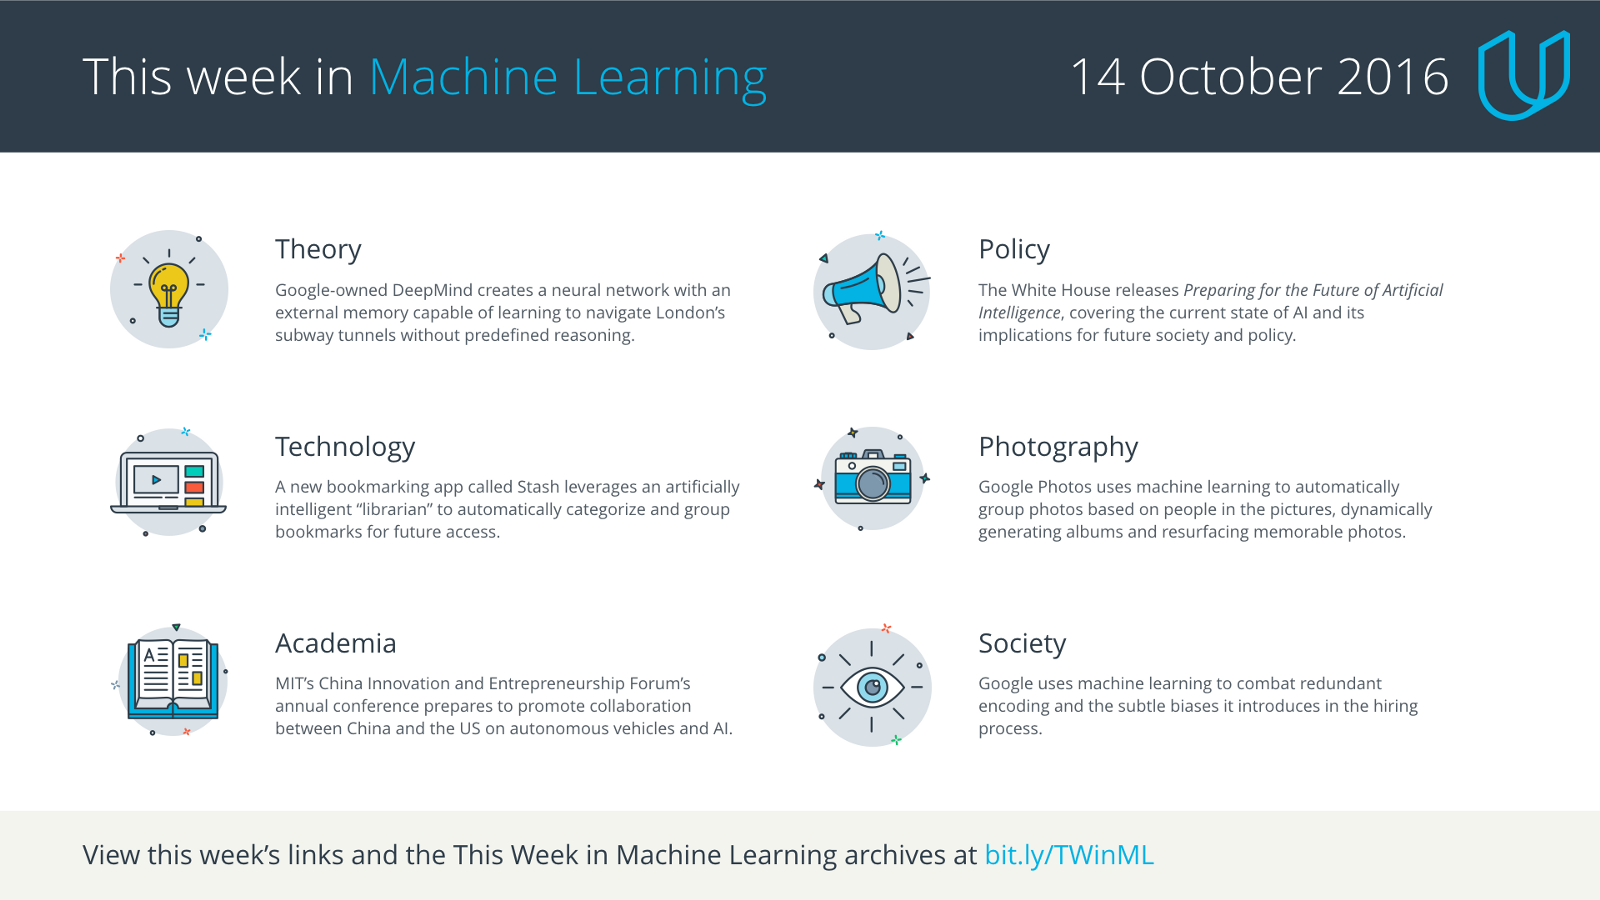 This Week in Machine Learning, 14 October 2016